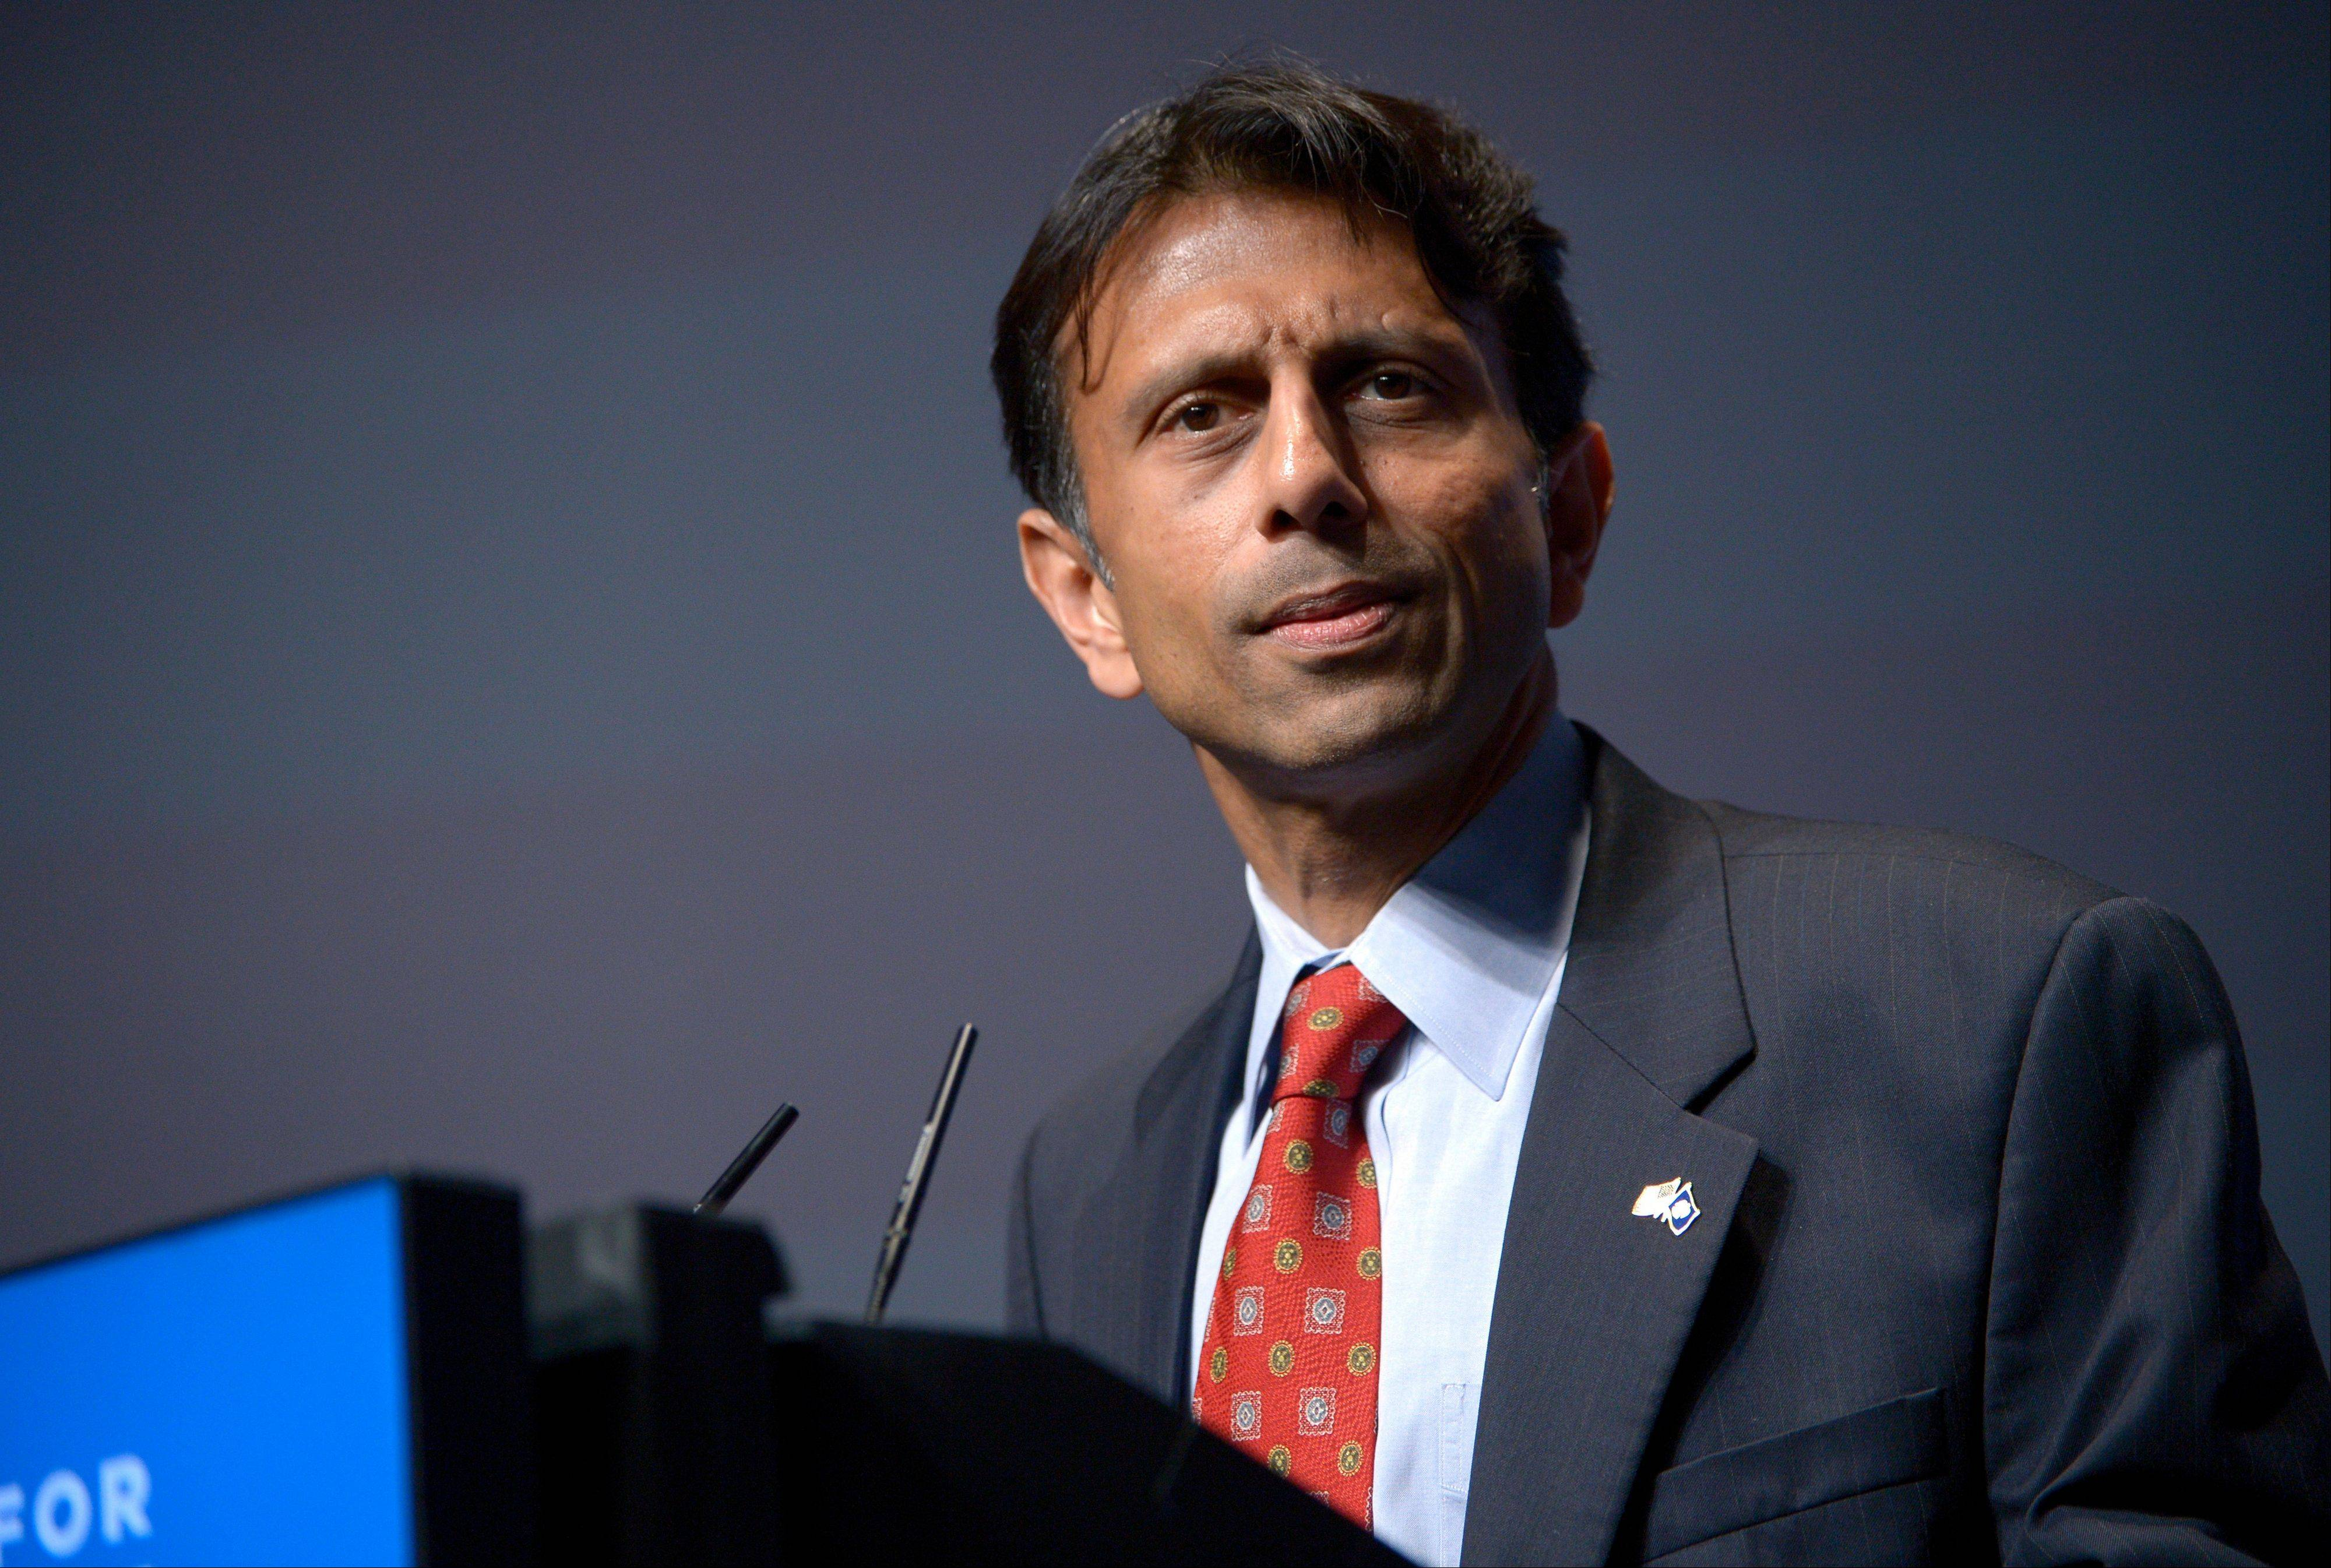 Louisiana Gov. Bobby Jindal will speak at a Republican fundraiser next month in Chicago.